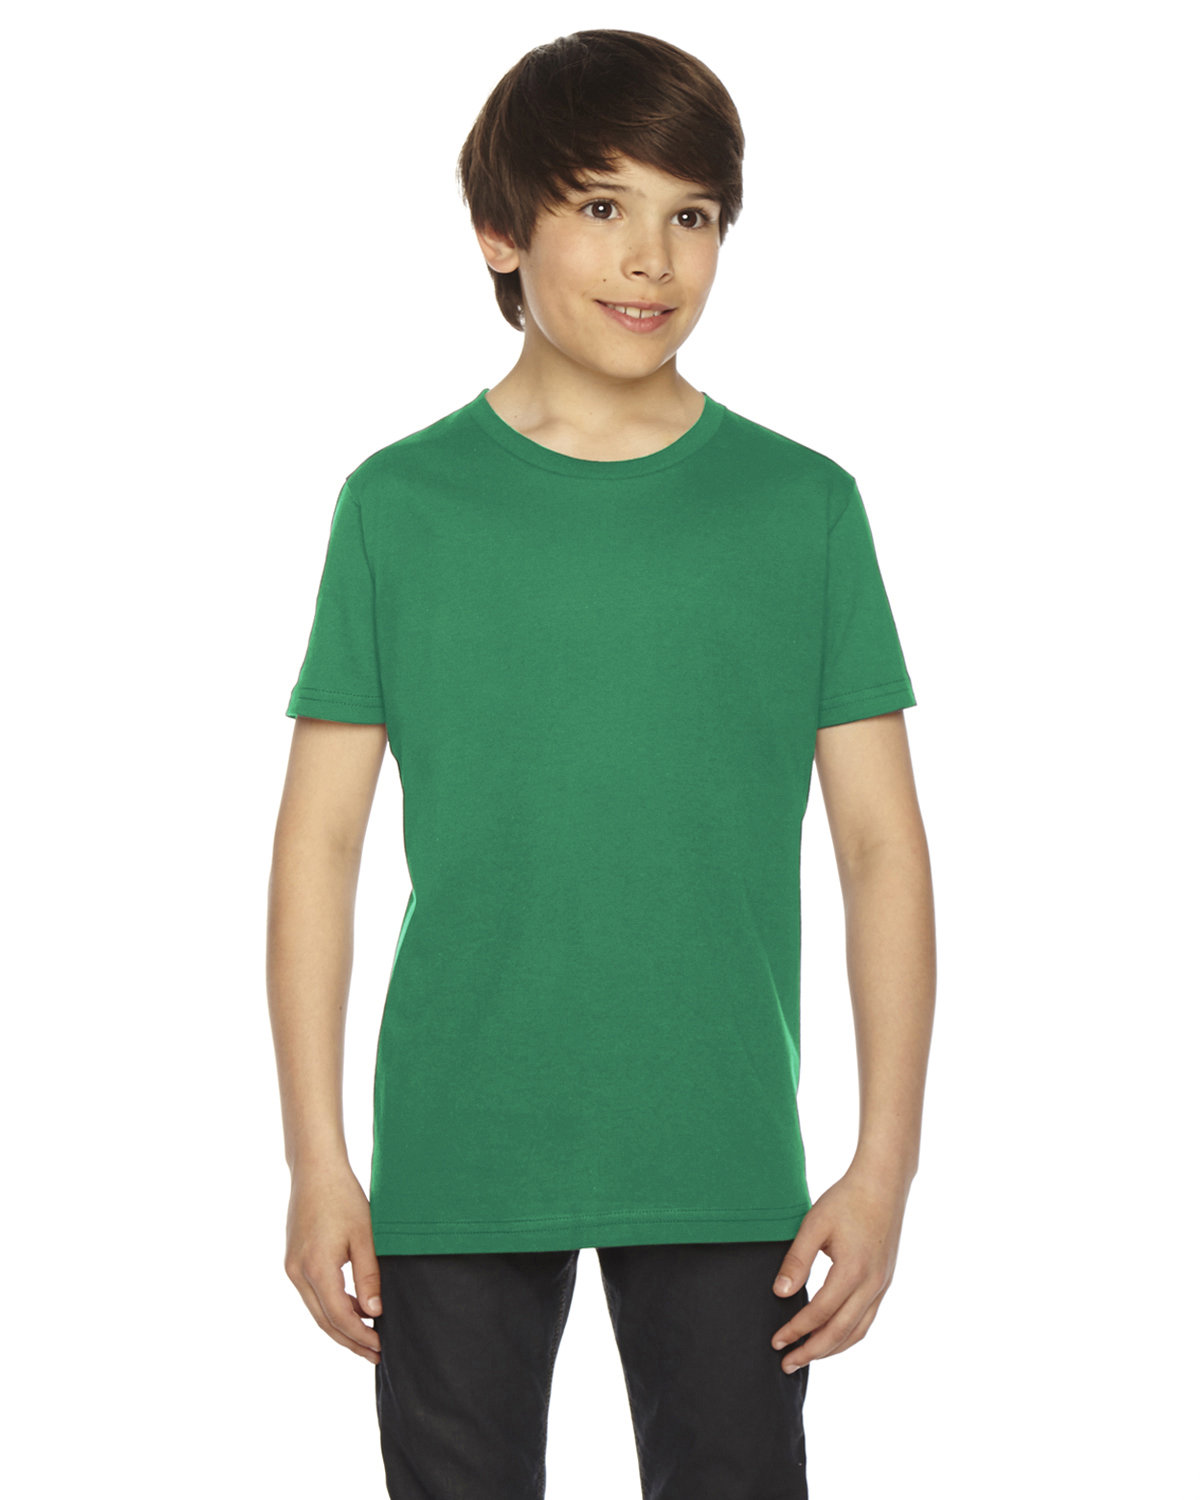 American Apparel Youth Fine Jersey Short-Sleeve T-Shirt KELLY GREEN